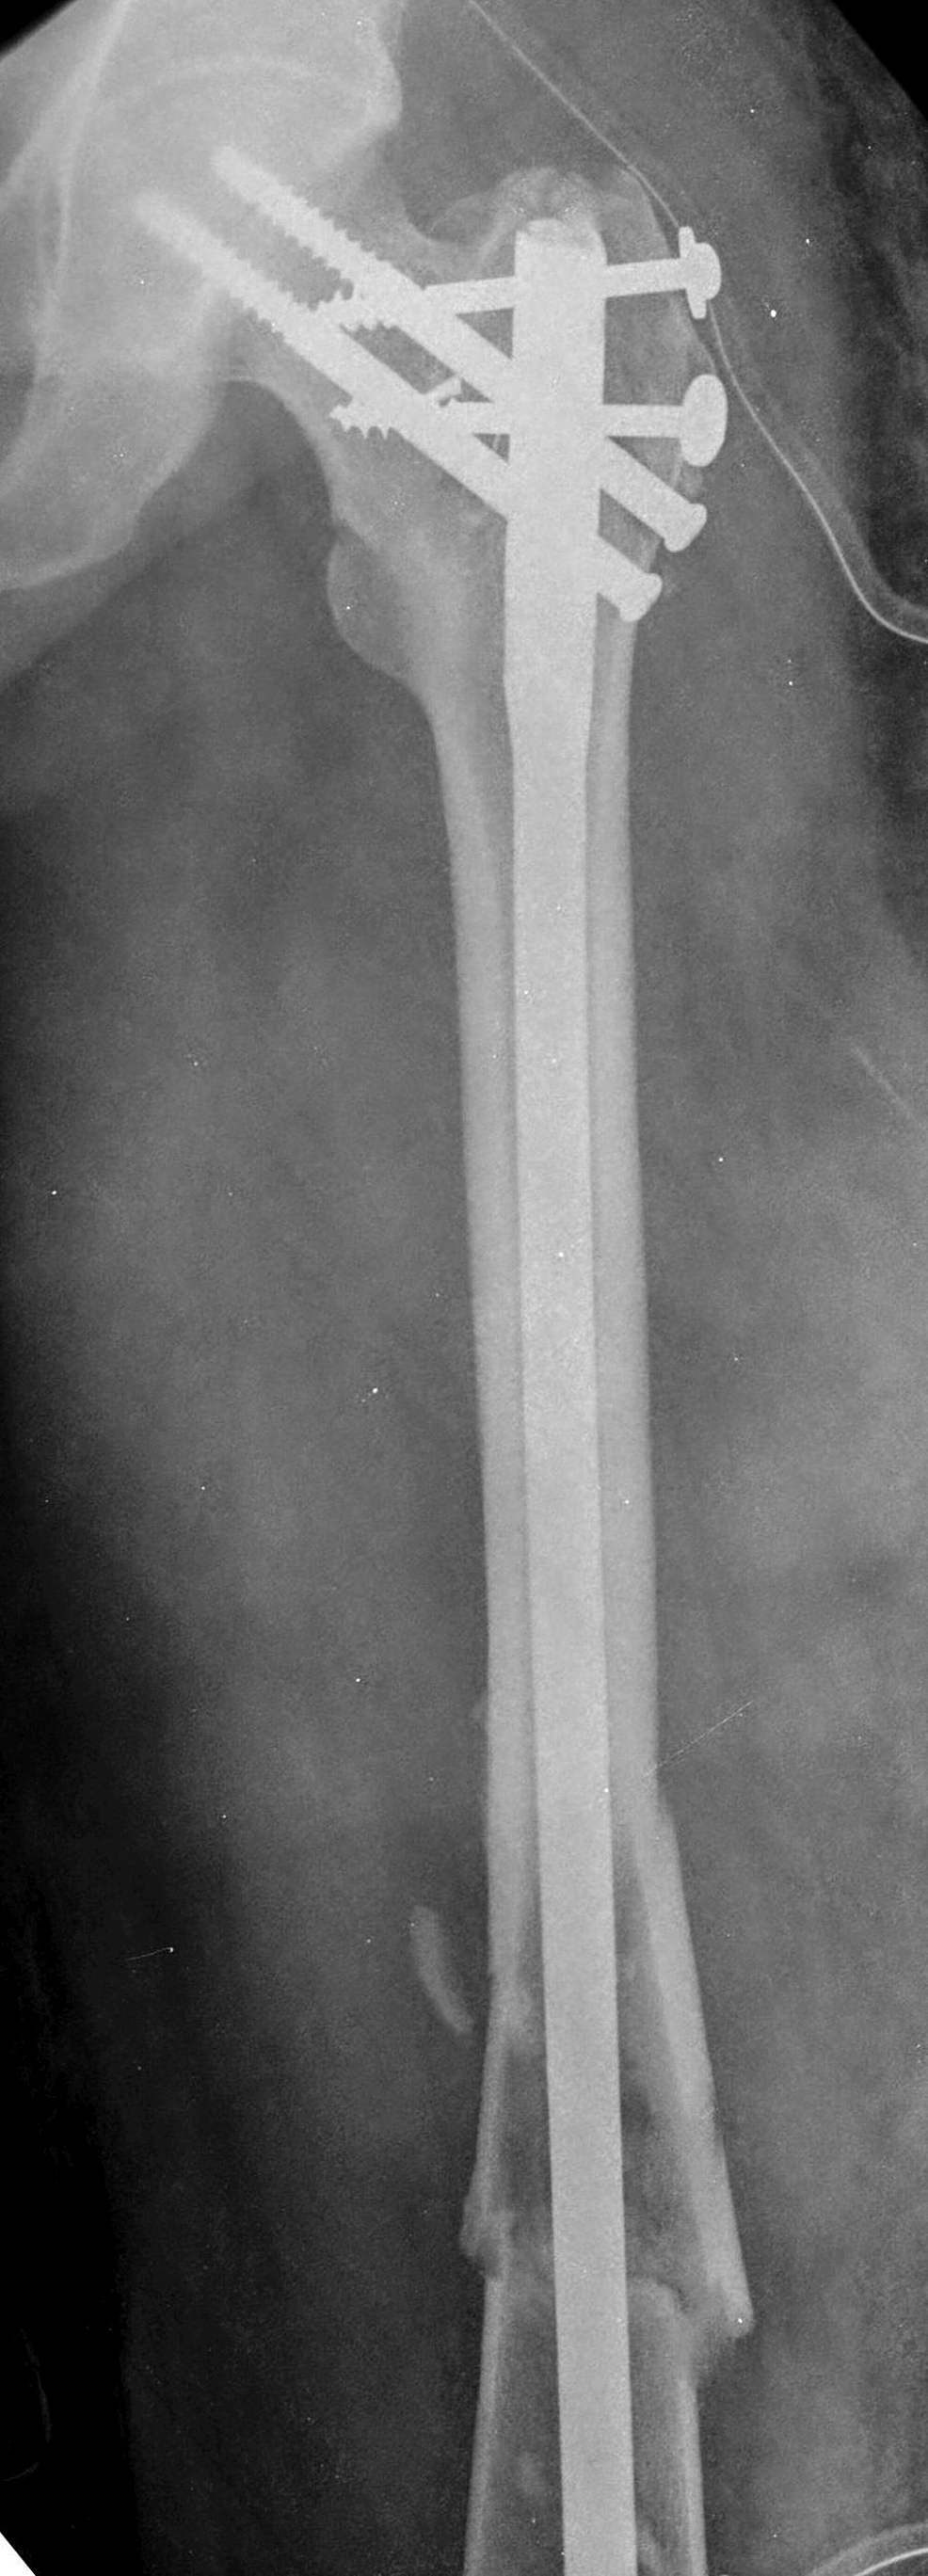 Six-months-post-op-x-ray-of-the-left-femur-showing-union-of-the-left-trochanteric-and-femoral-shaft-fracture